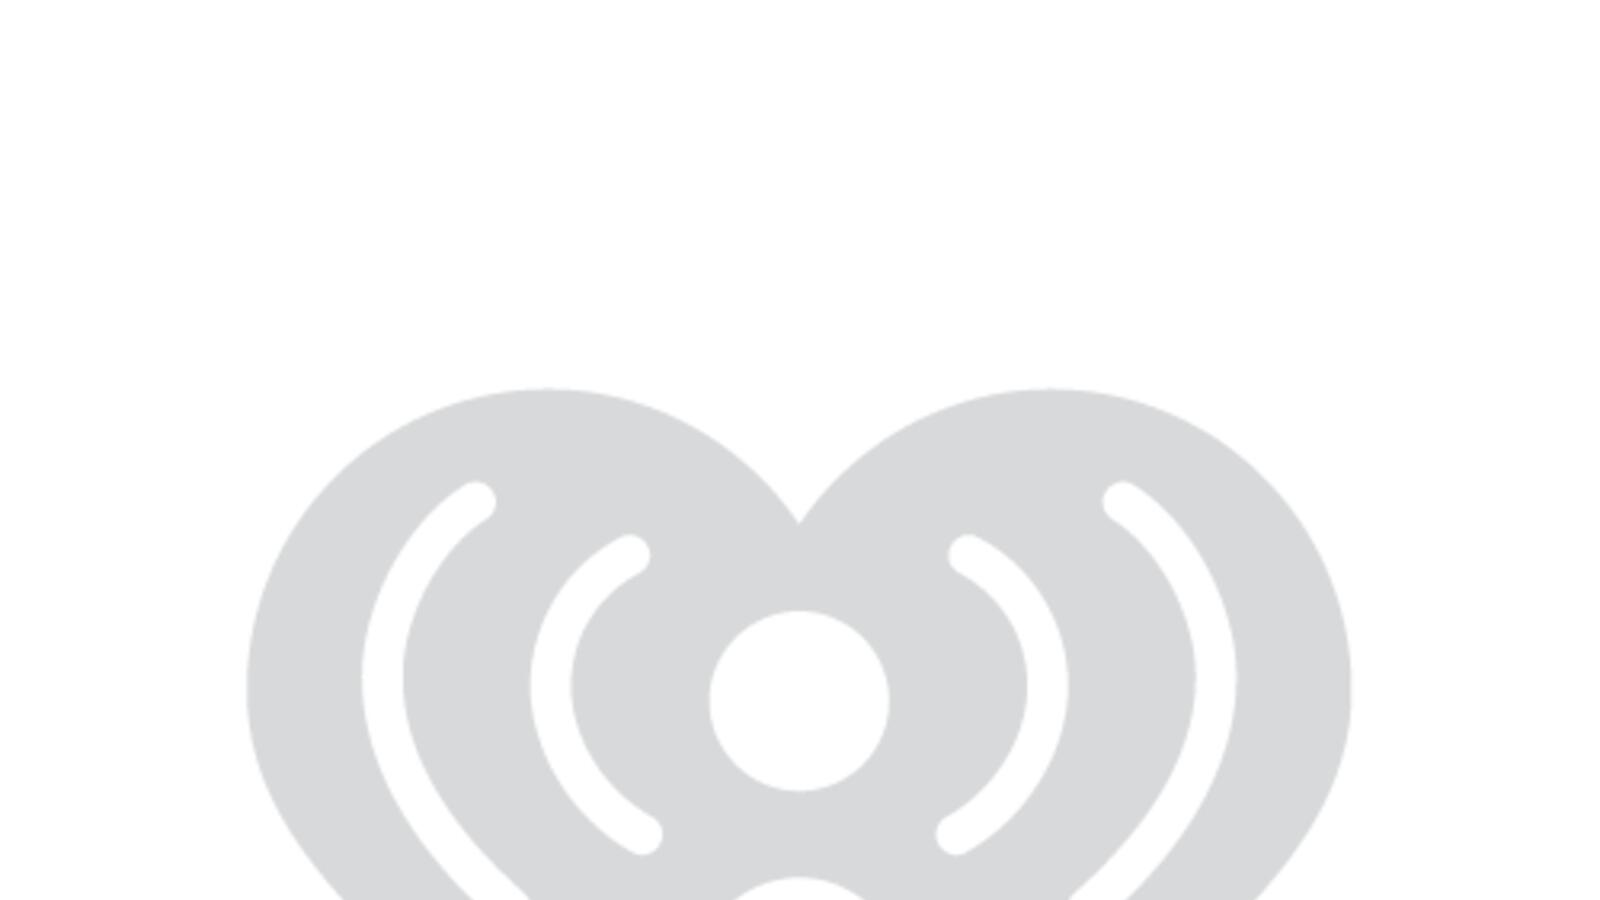 Debunking the 'Kleefisch's Husband Posed with White Supremacists' Story